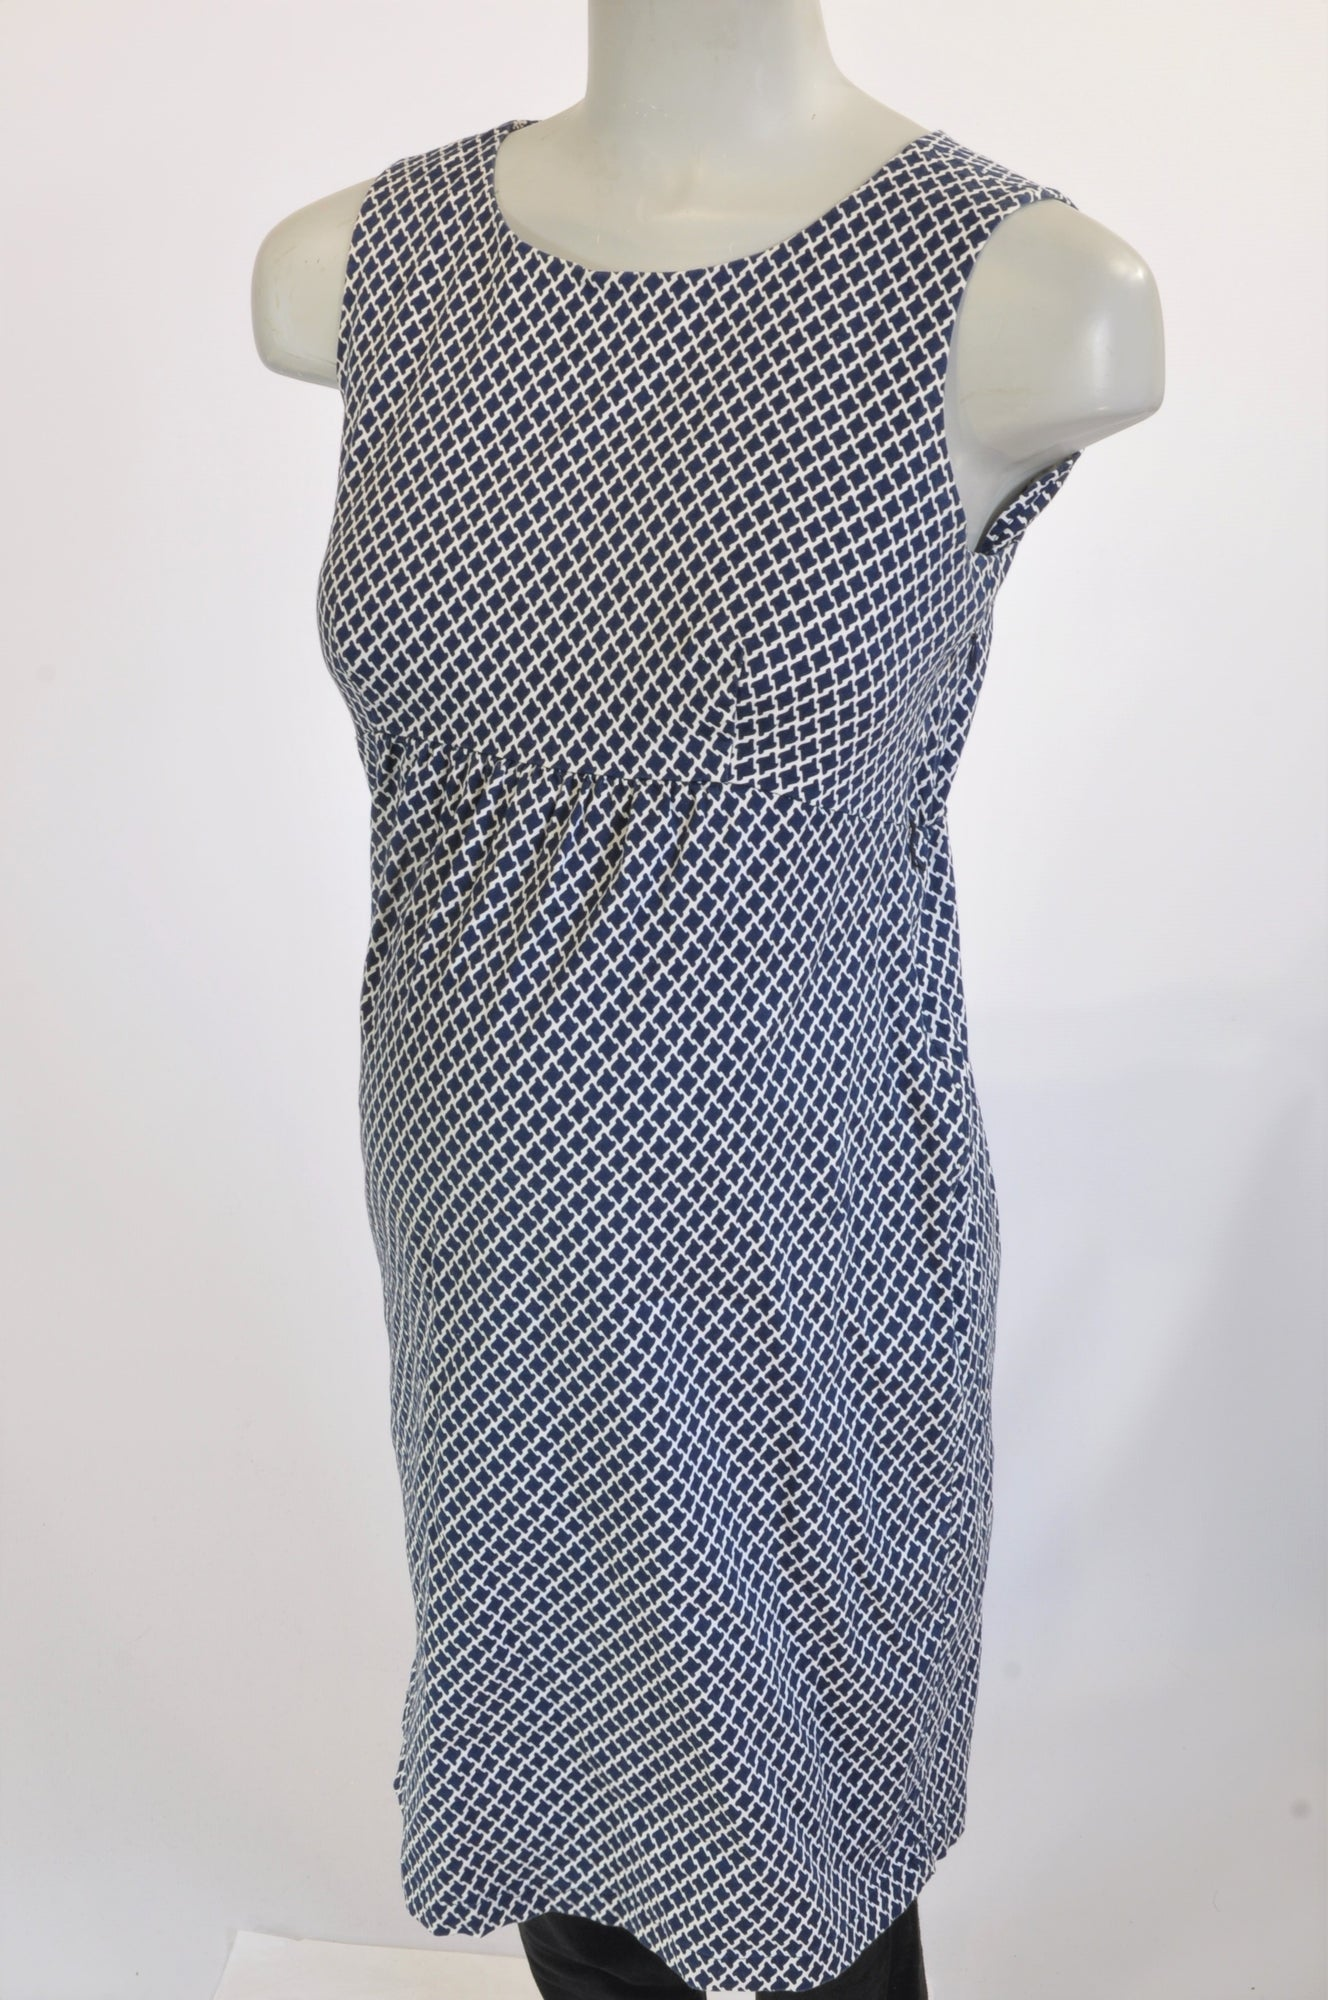 Seraphine Navy & Cream Geometric Print Pencil Maternity Dress Size 12